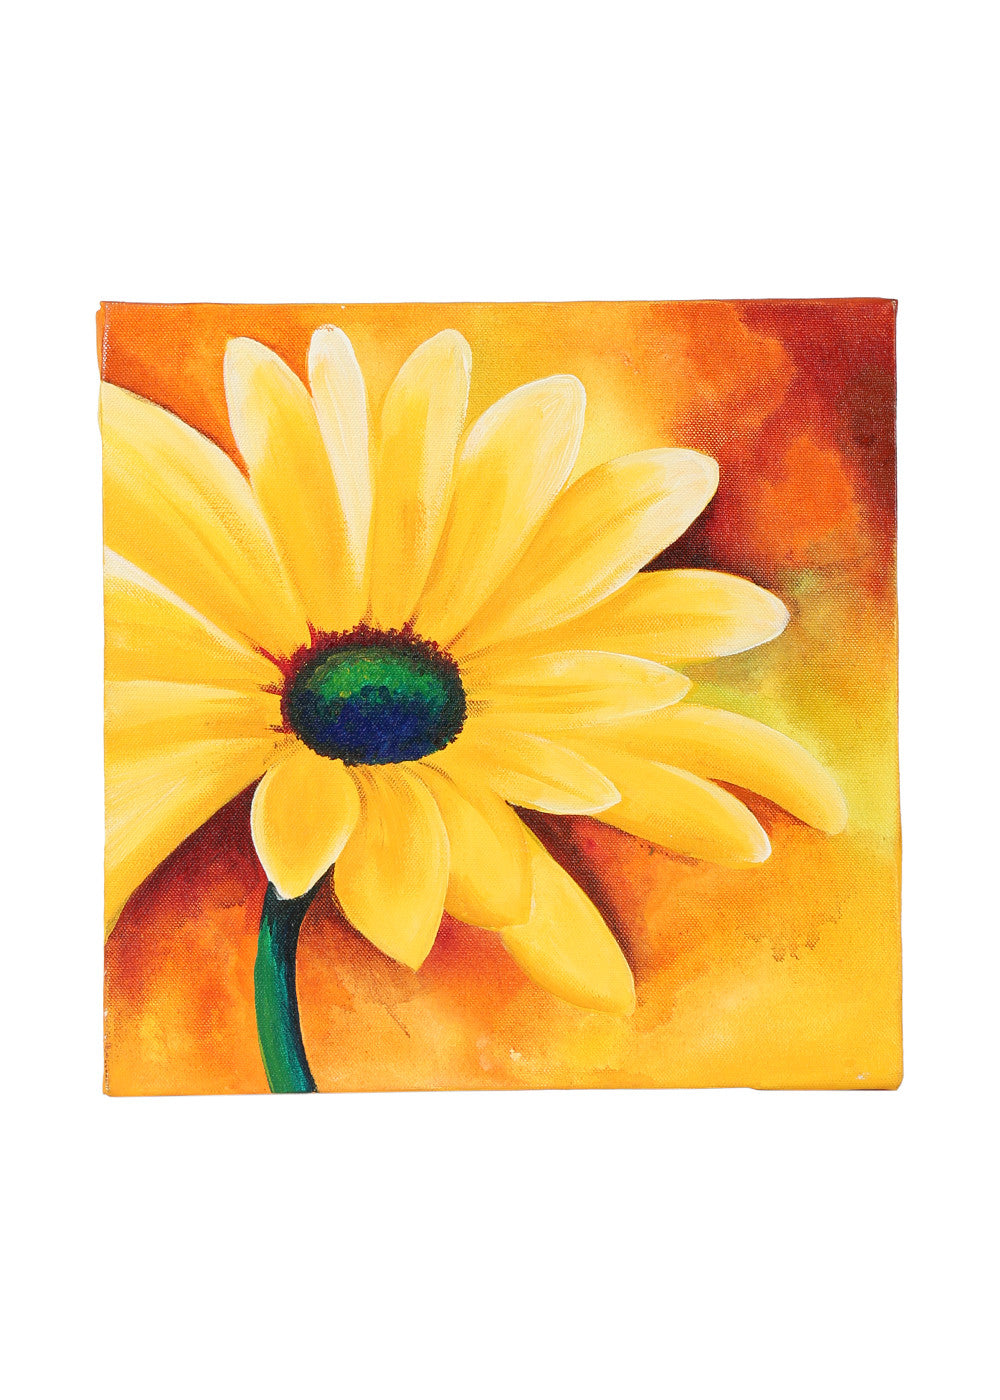 Hand-painted Blooming Sunflower Classic Painting - RANGRAGE